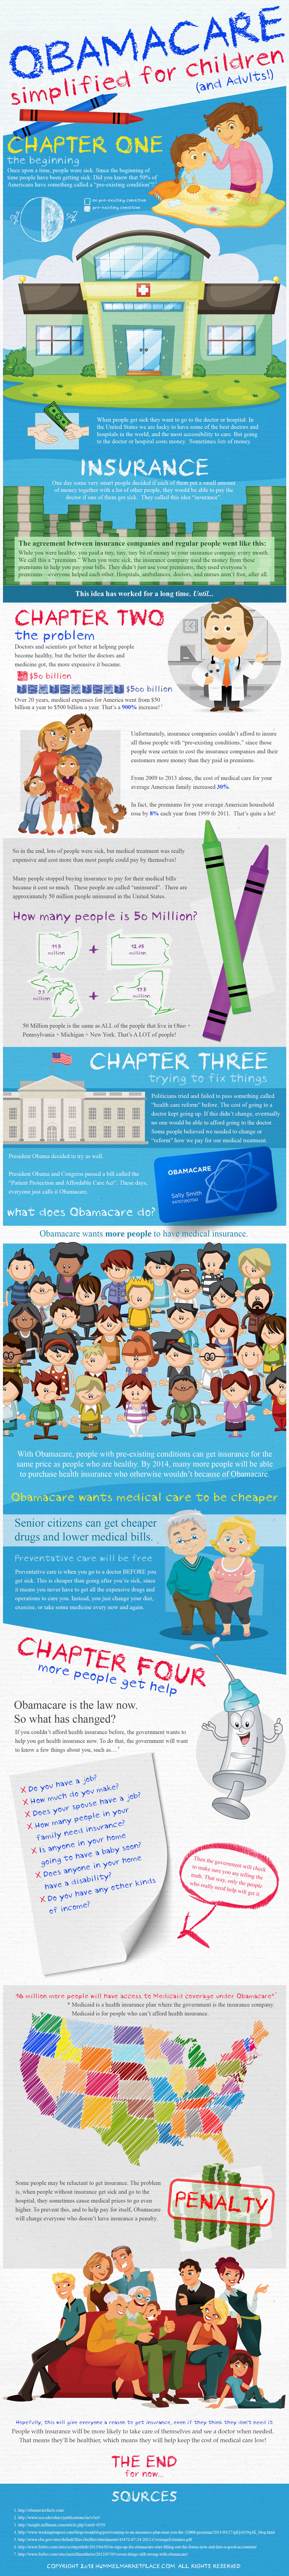 Obamacare Simplified for Children and Adults Infographic